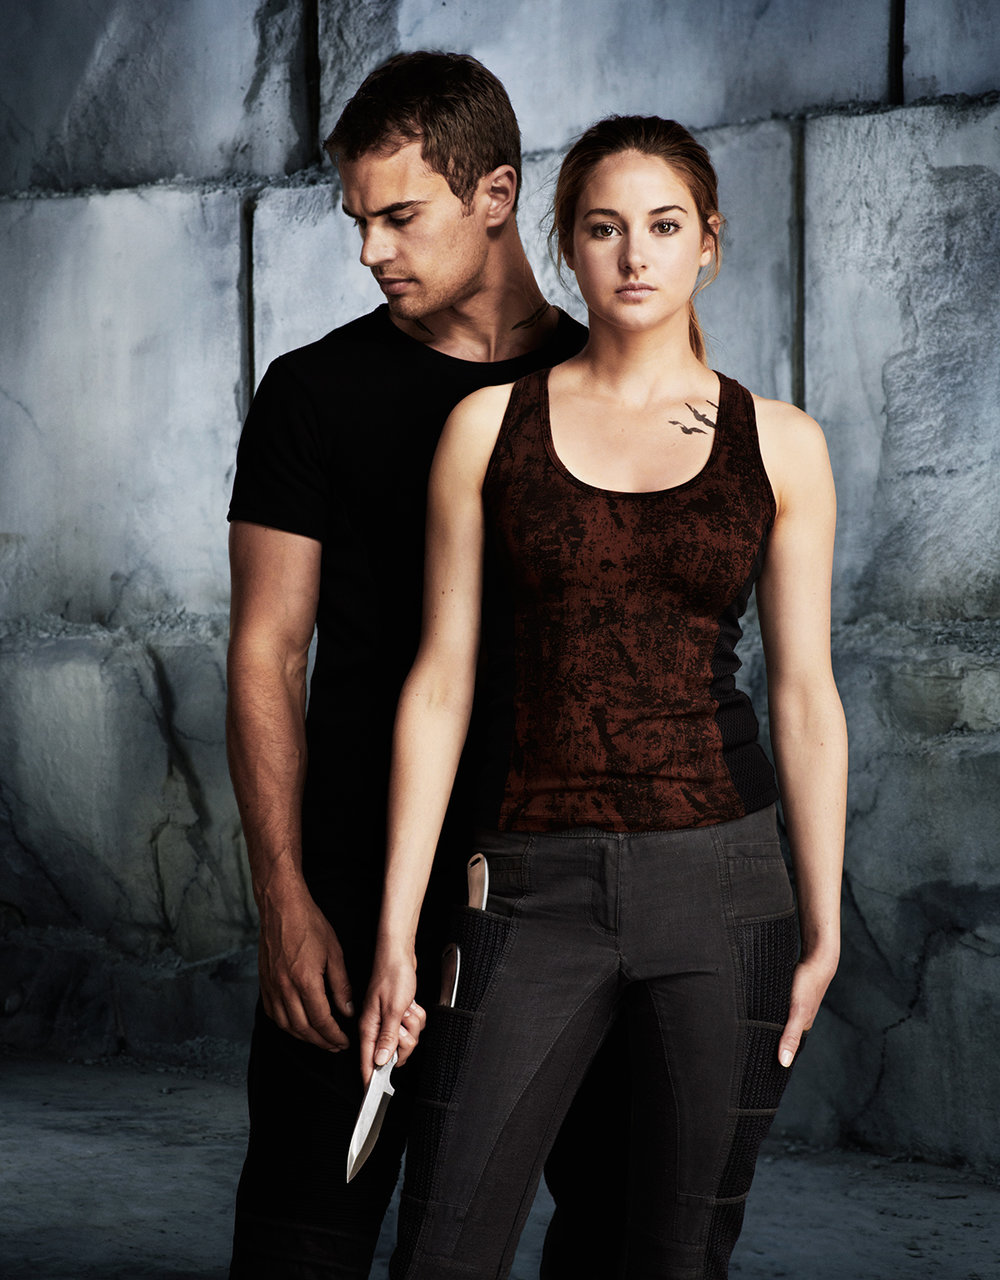 Theo James and Shailene Woodley - Chicago, IL